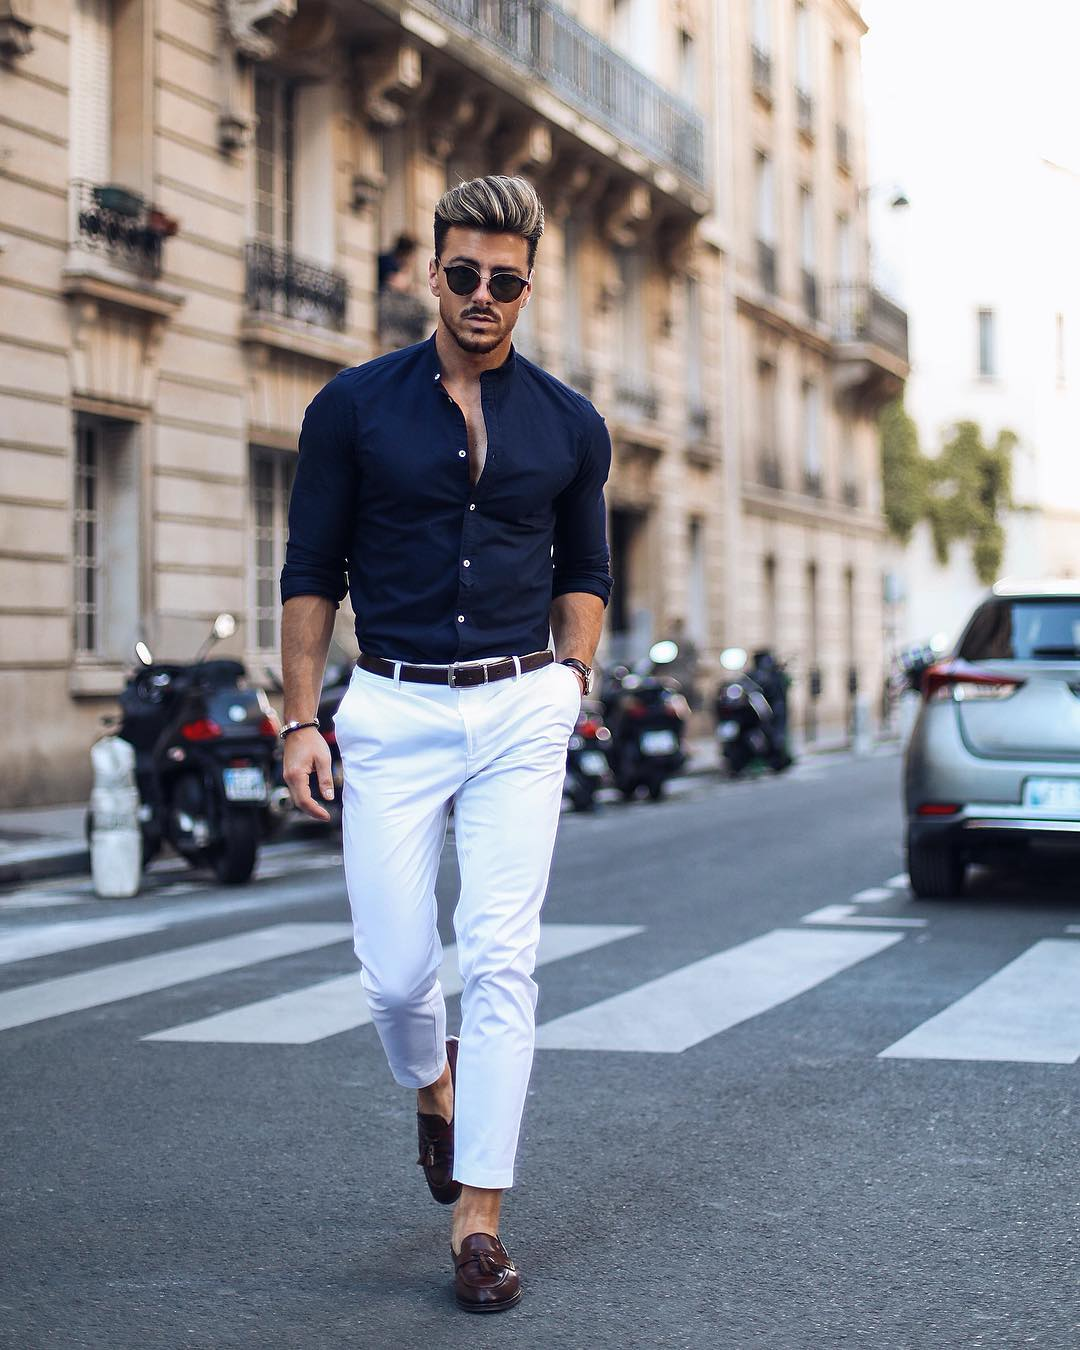 5 Simple shirt outfits for men. #shirt #outfits #mensfashion #streetstyle